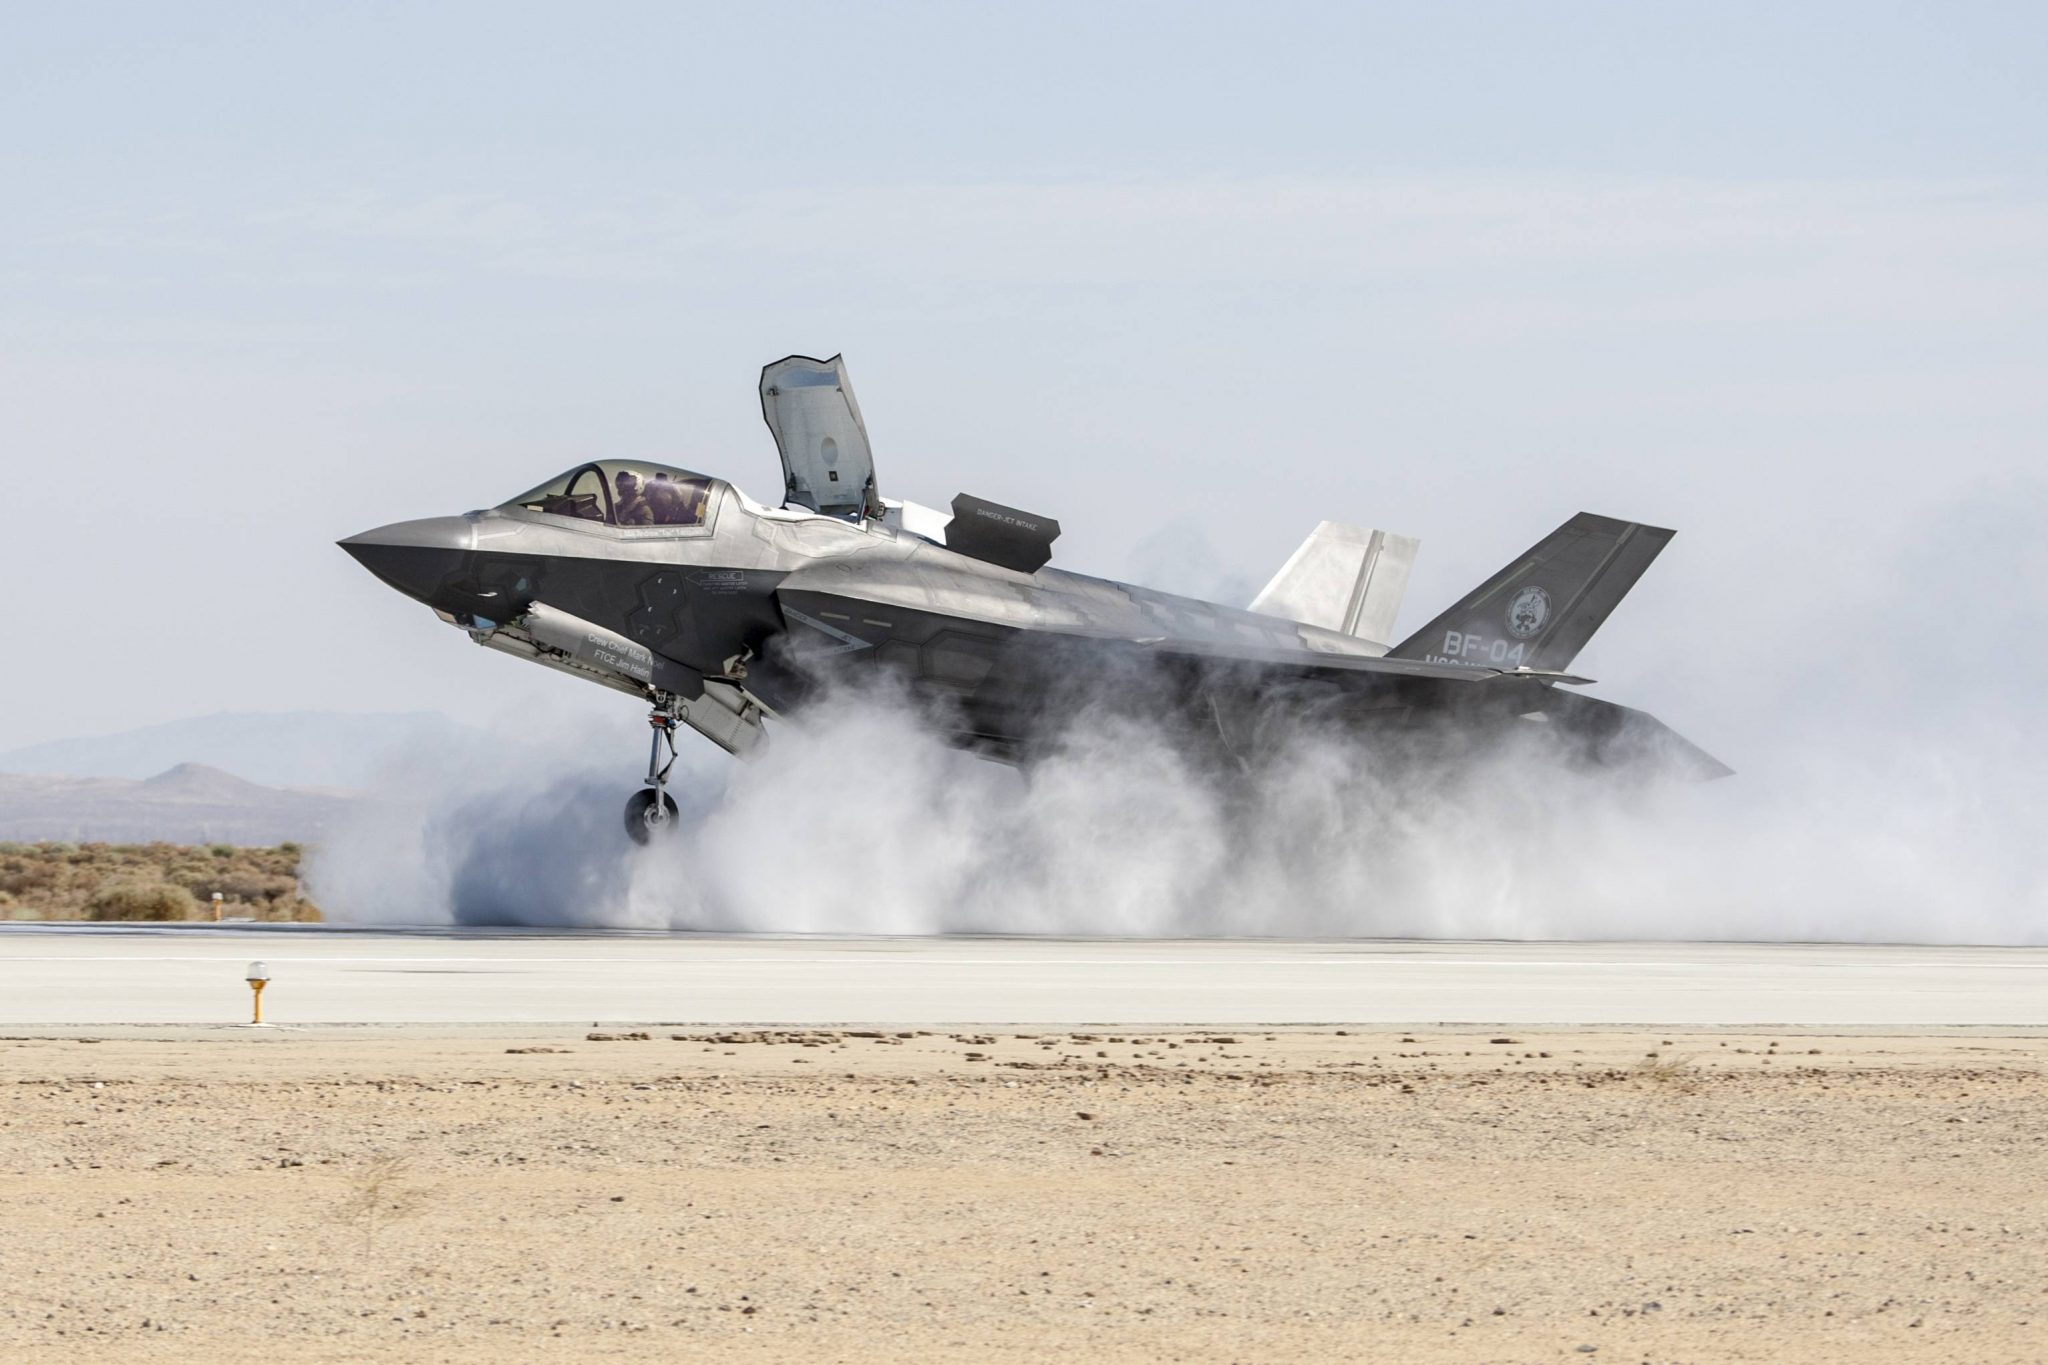 lockheed martin case study The world's first truly international, integrated digital environment (ide) supports the design, manufacture and sustainment of the joint strike fighter f-35 aircraft.